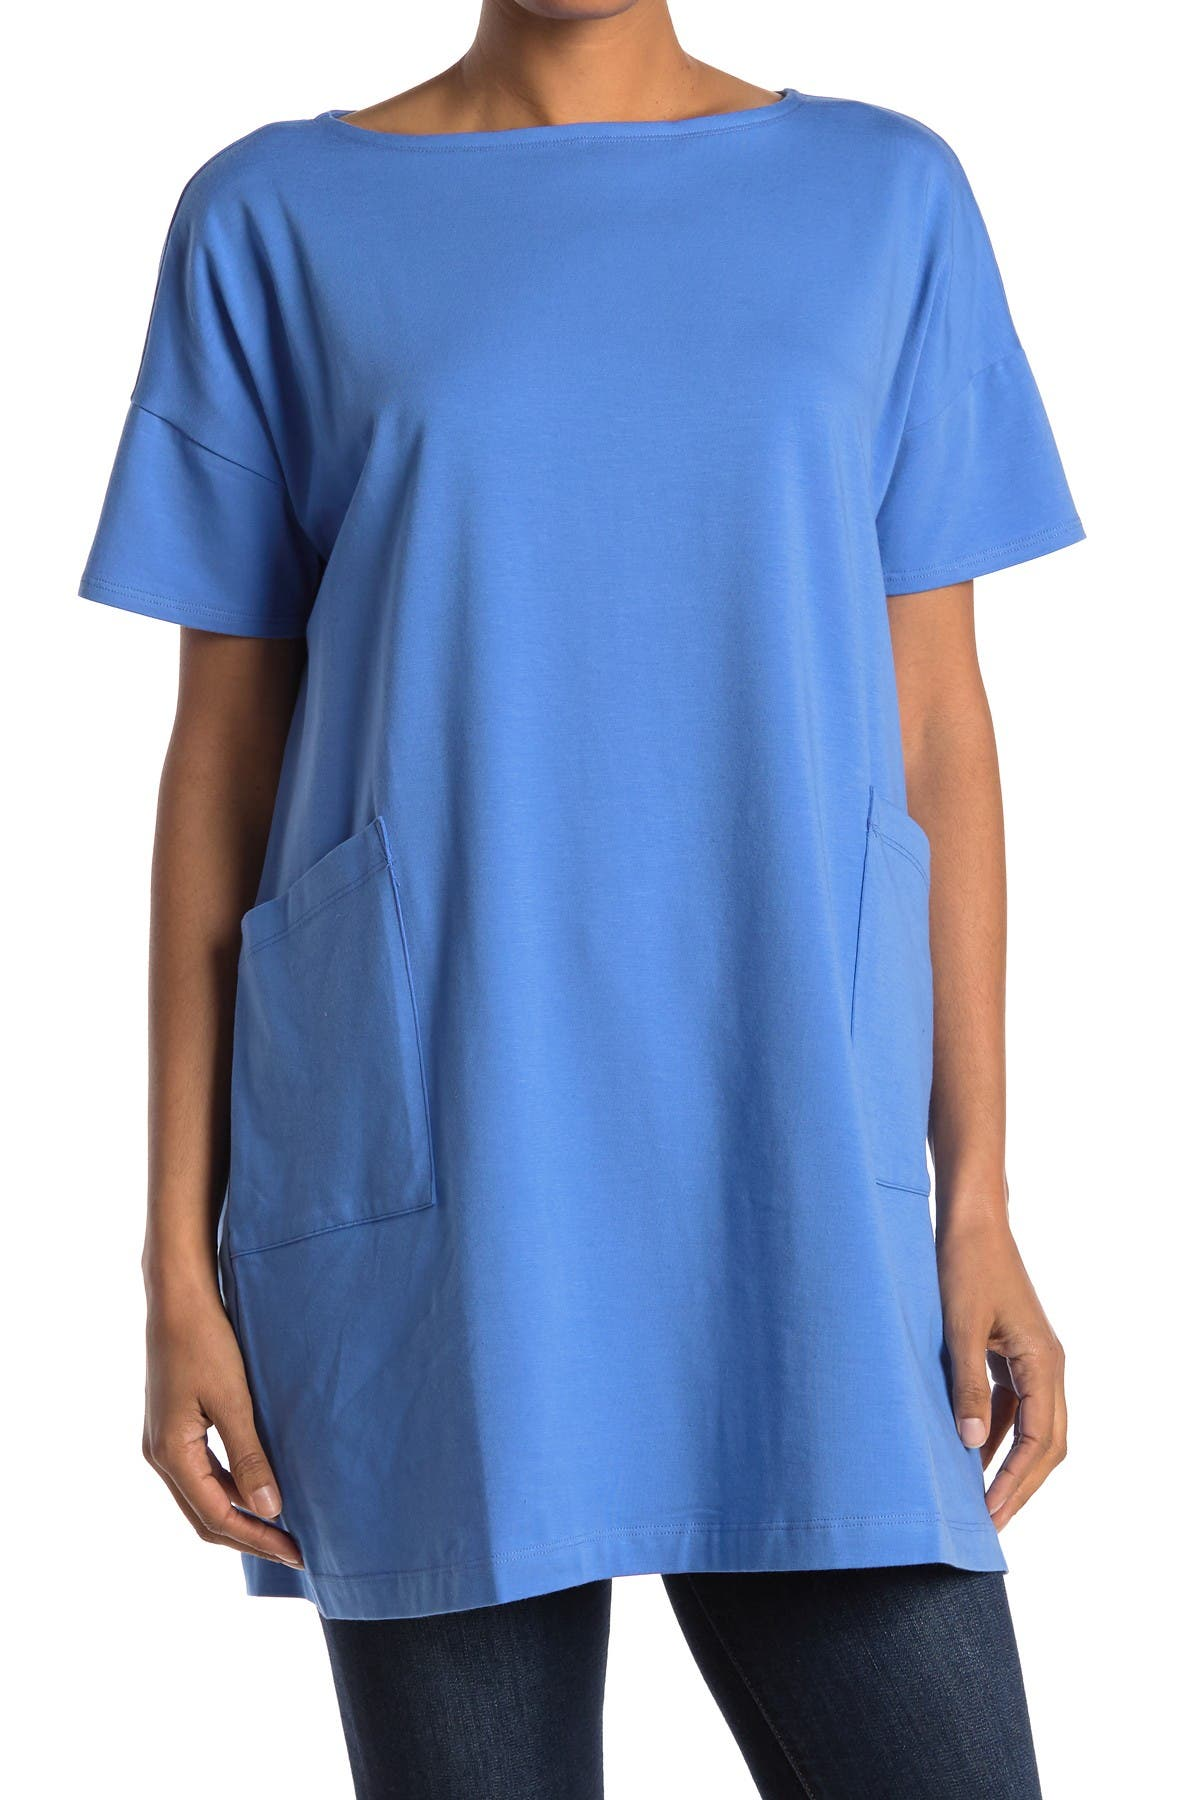 Image of Eileen Fisher Stretch Organic Cotton Tunic